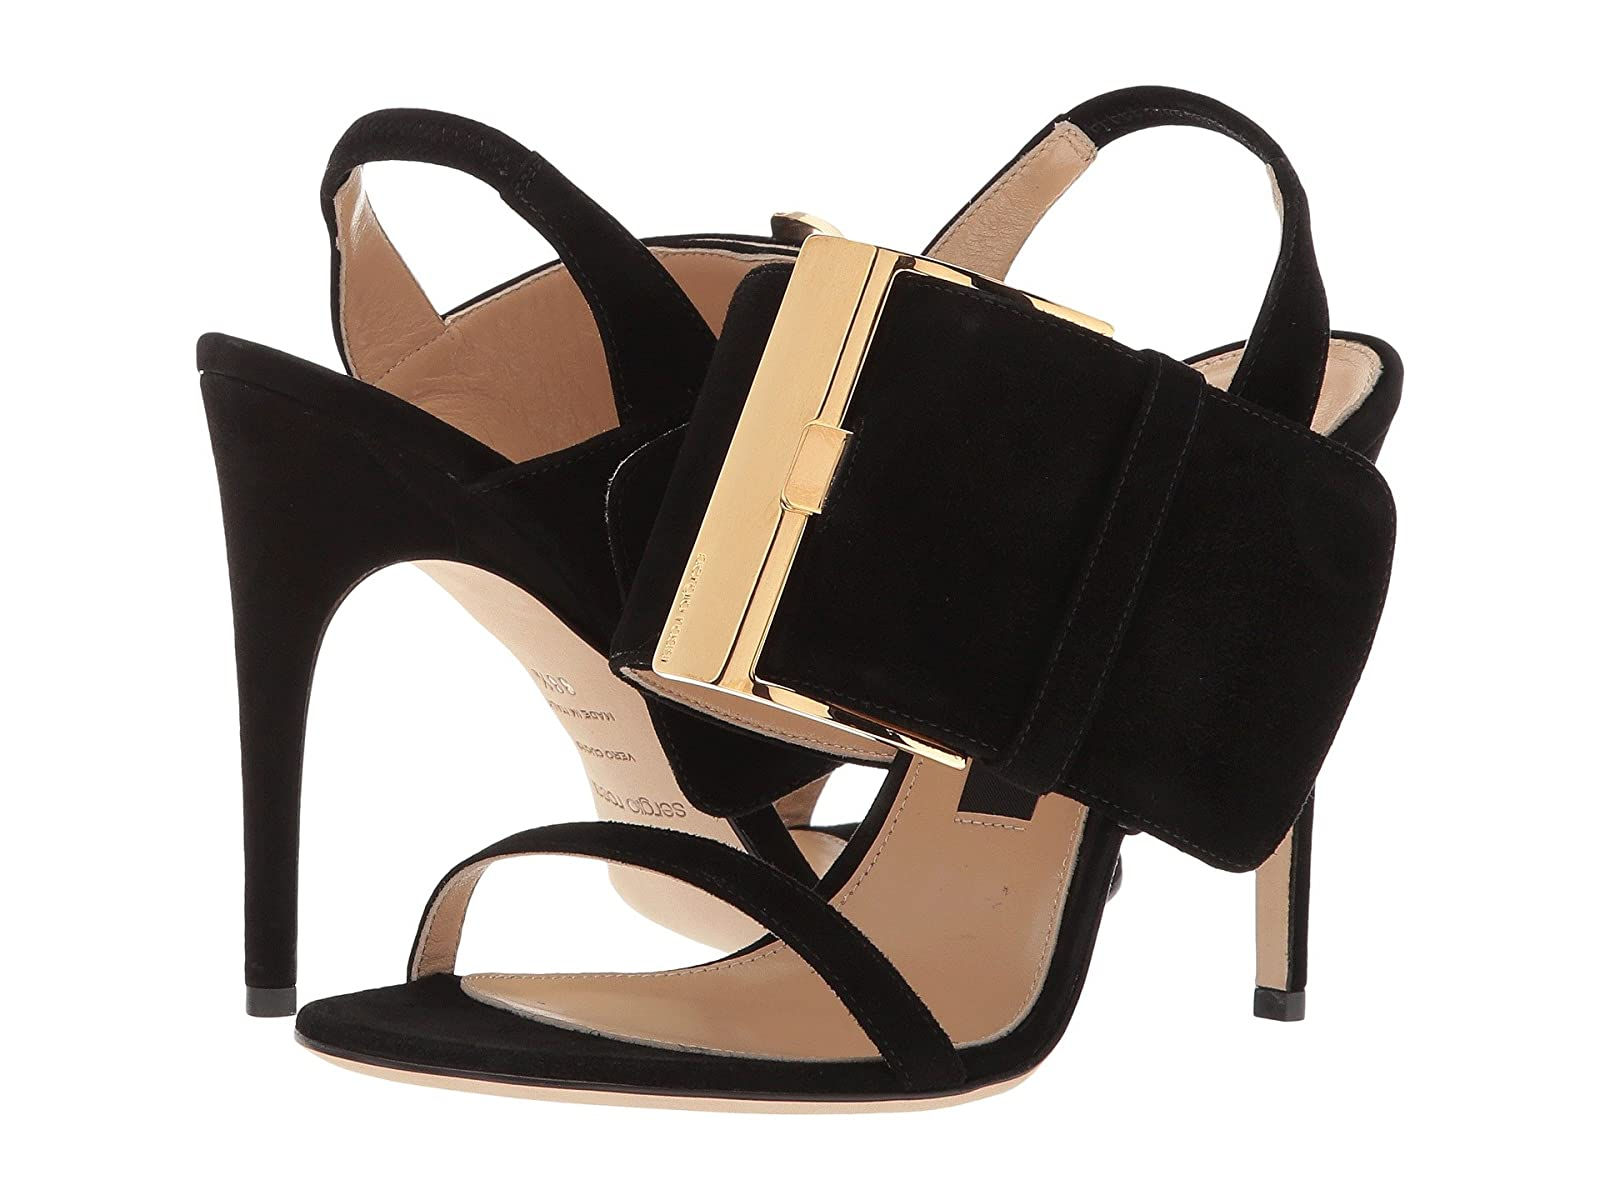 Sergio Rossi A80560-MCAZ01Cheap and distinctive eye-catching shoes